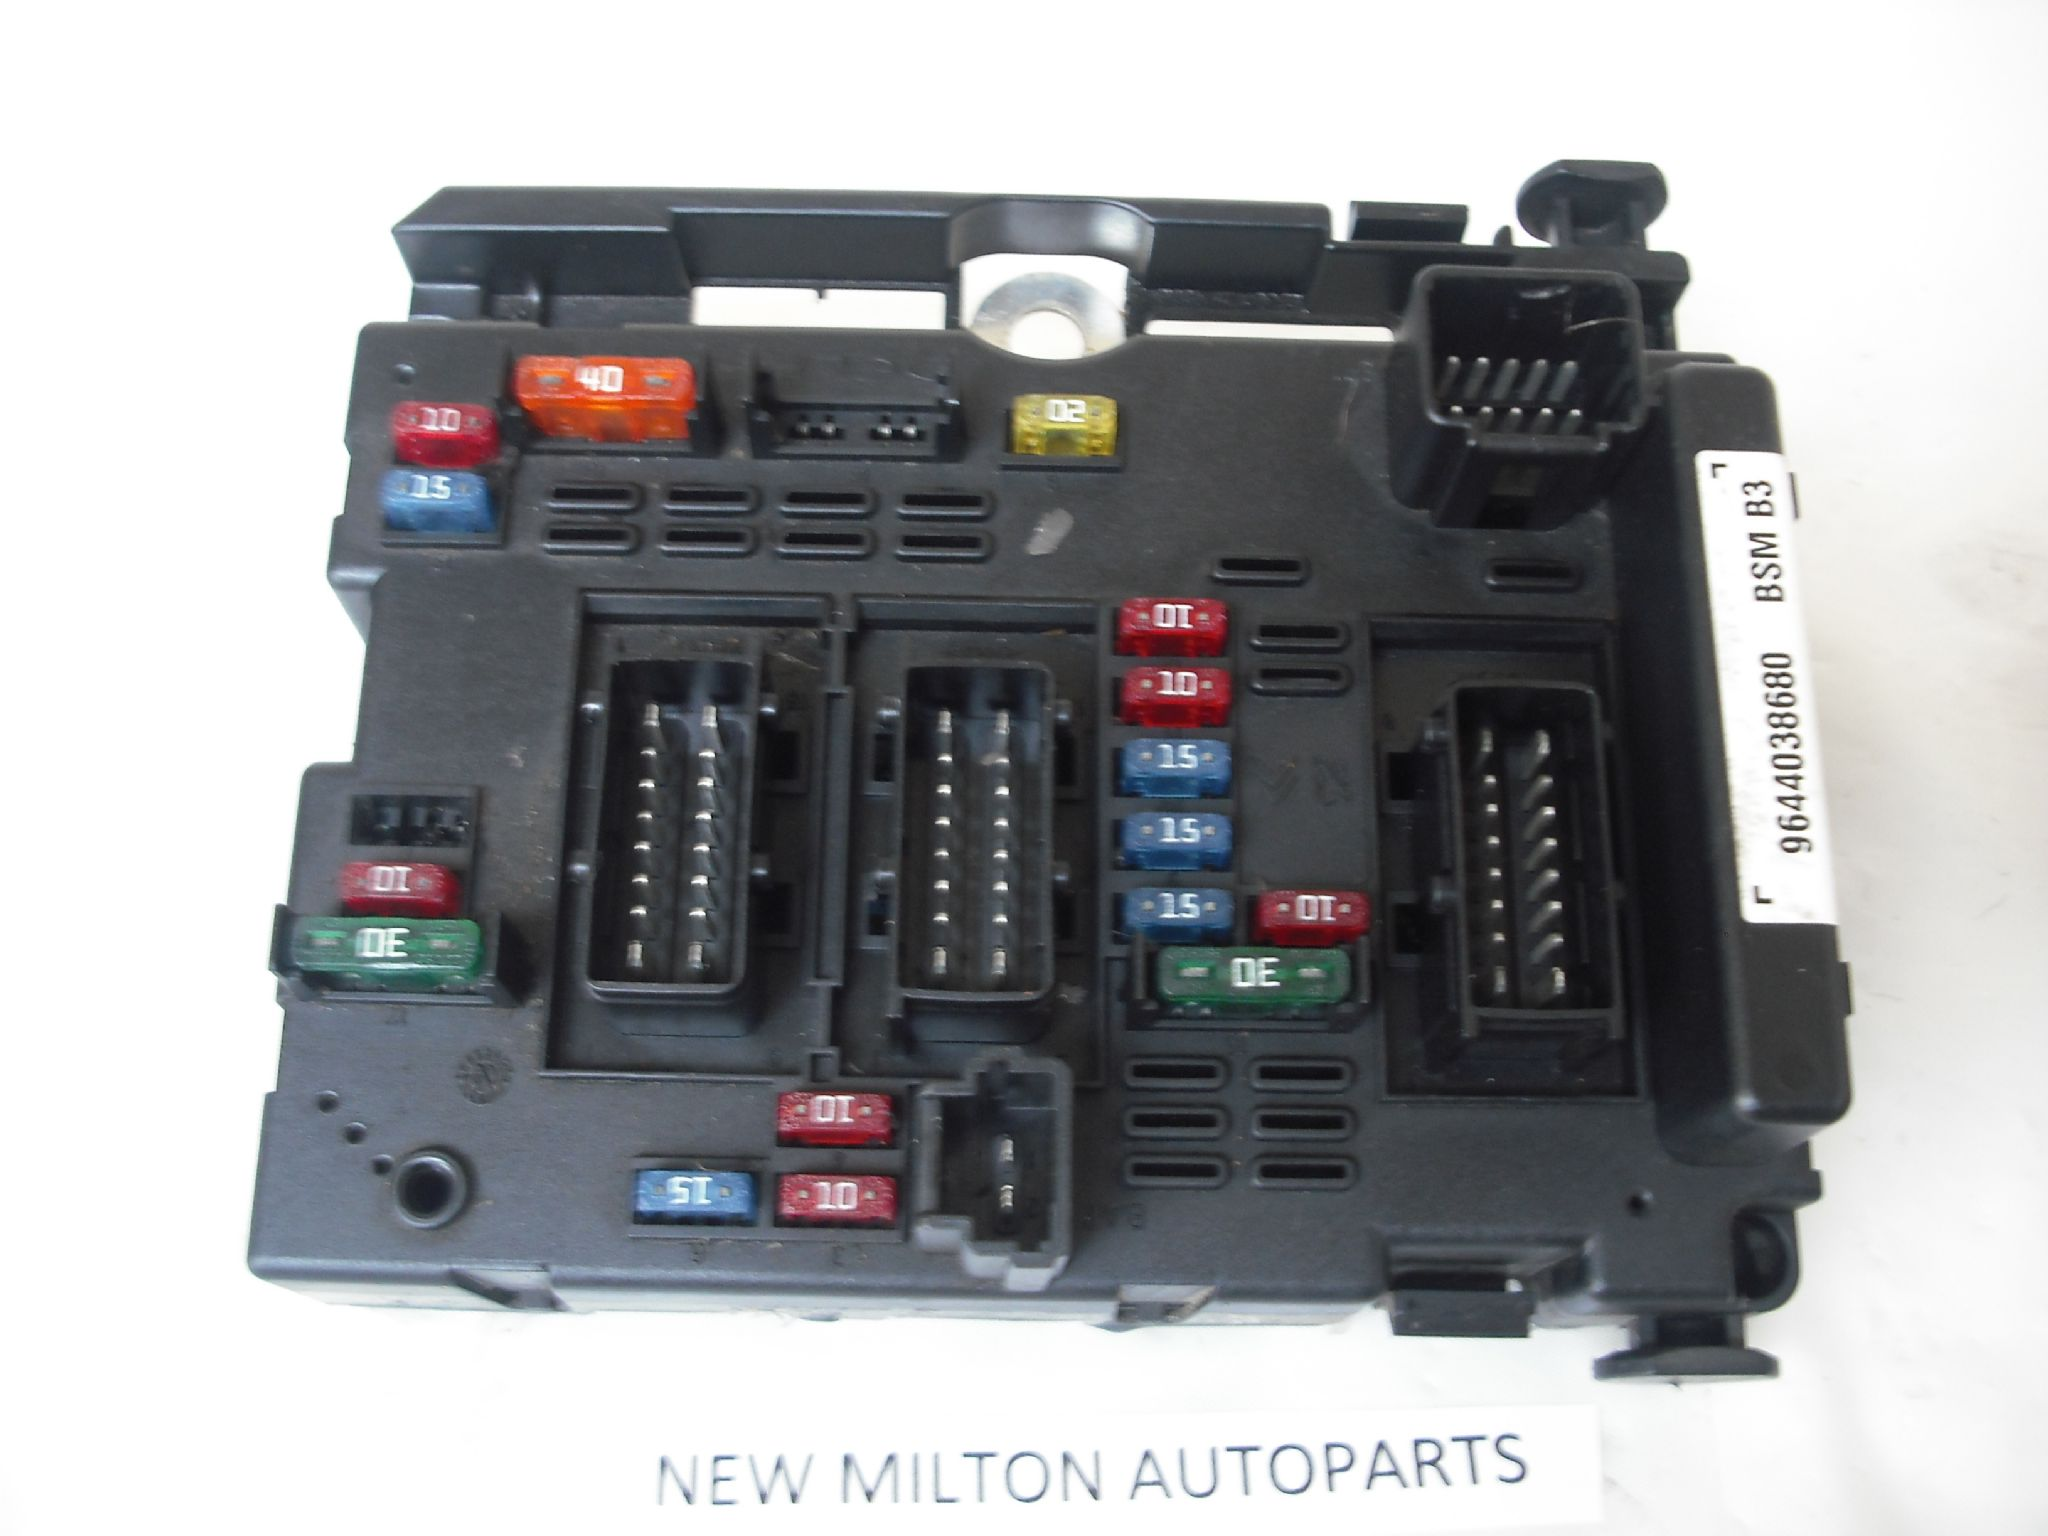 citroen berlingo van wiring diagram what does a plot look like fuse box in dispatch library